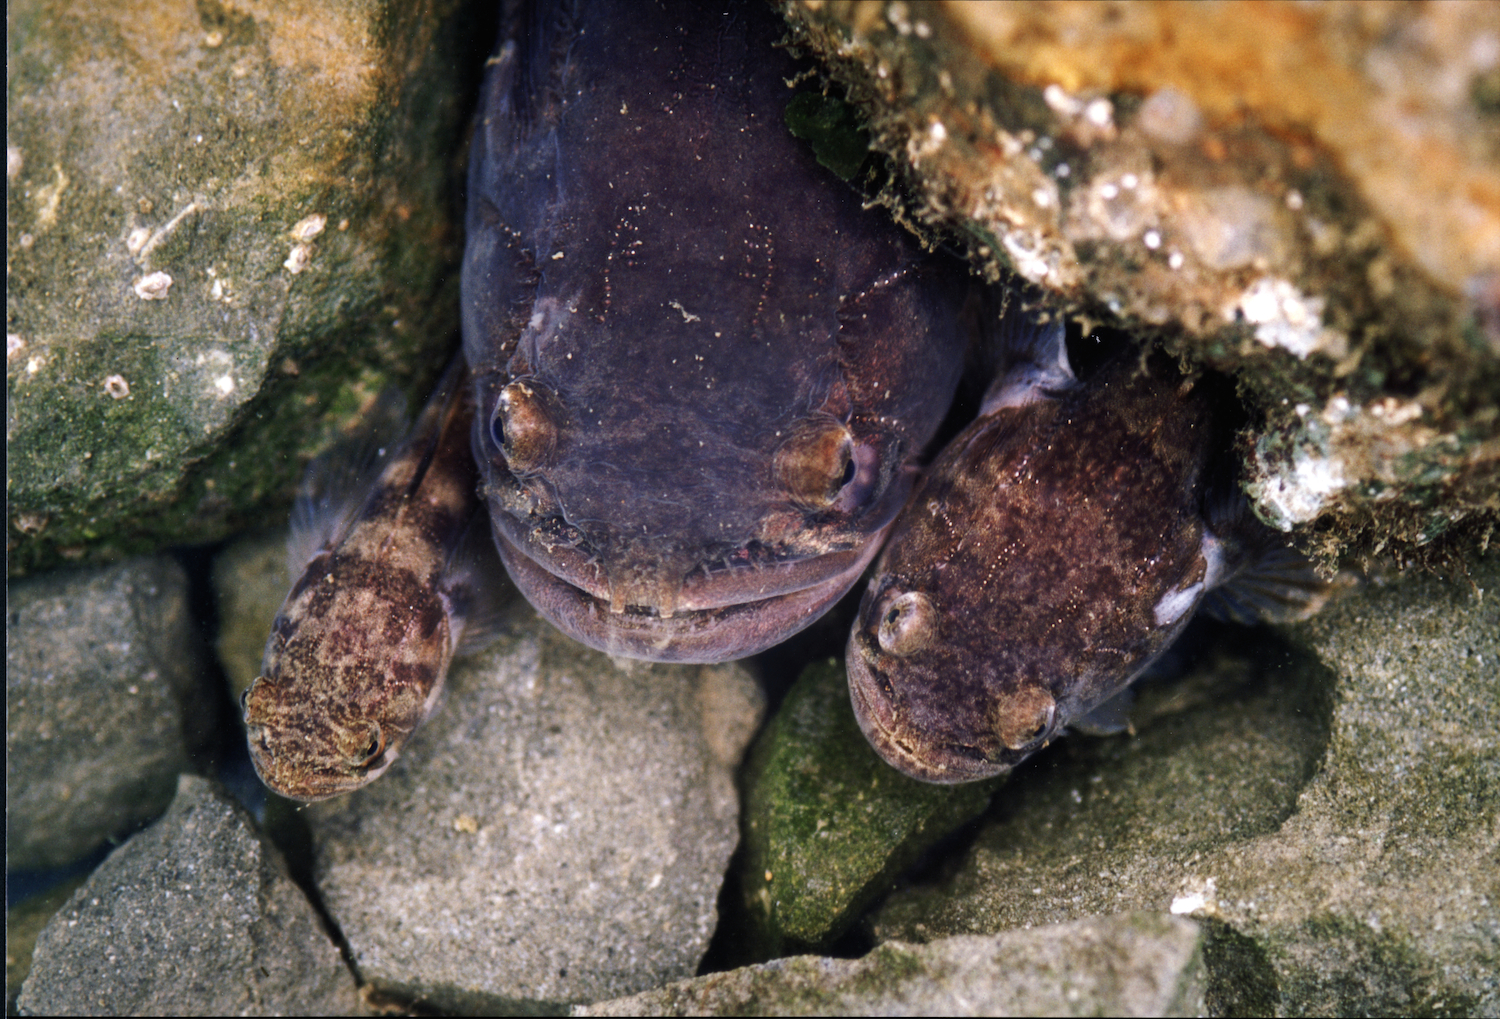 Three midshipman in a nest. From left to right: type II male, type I male, female